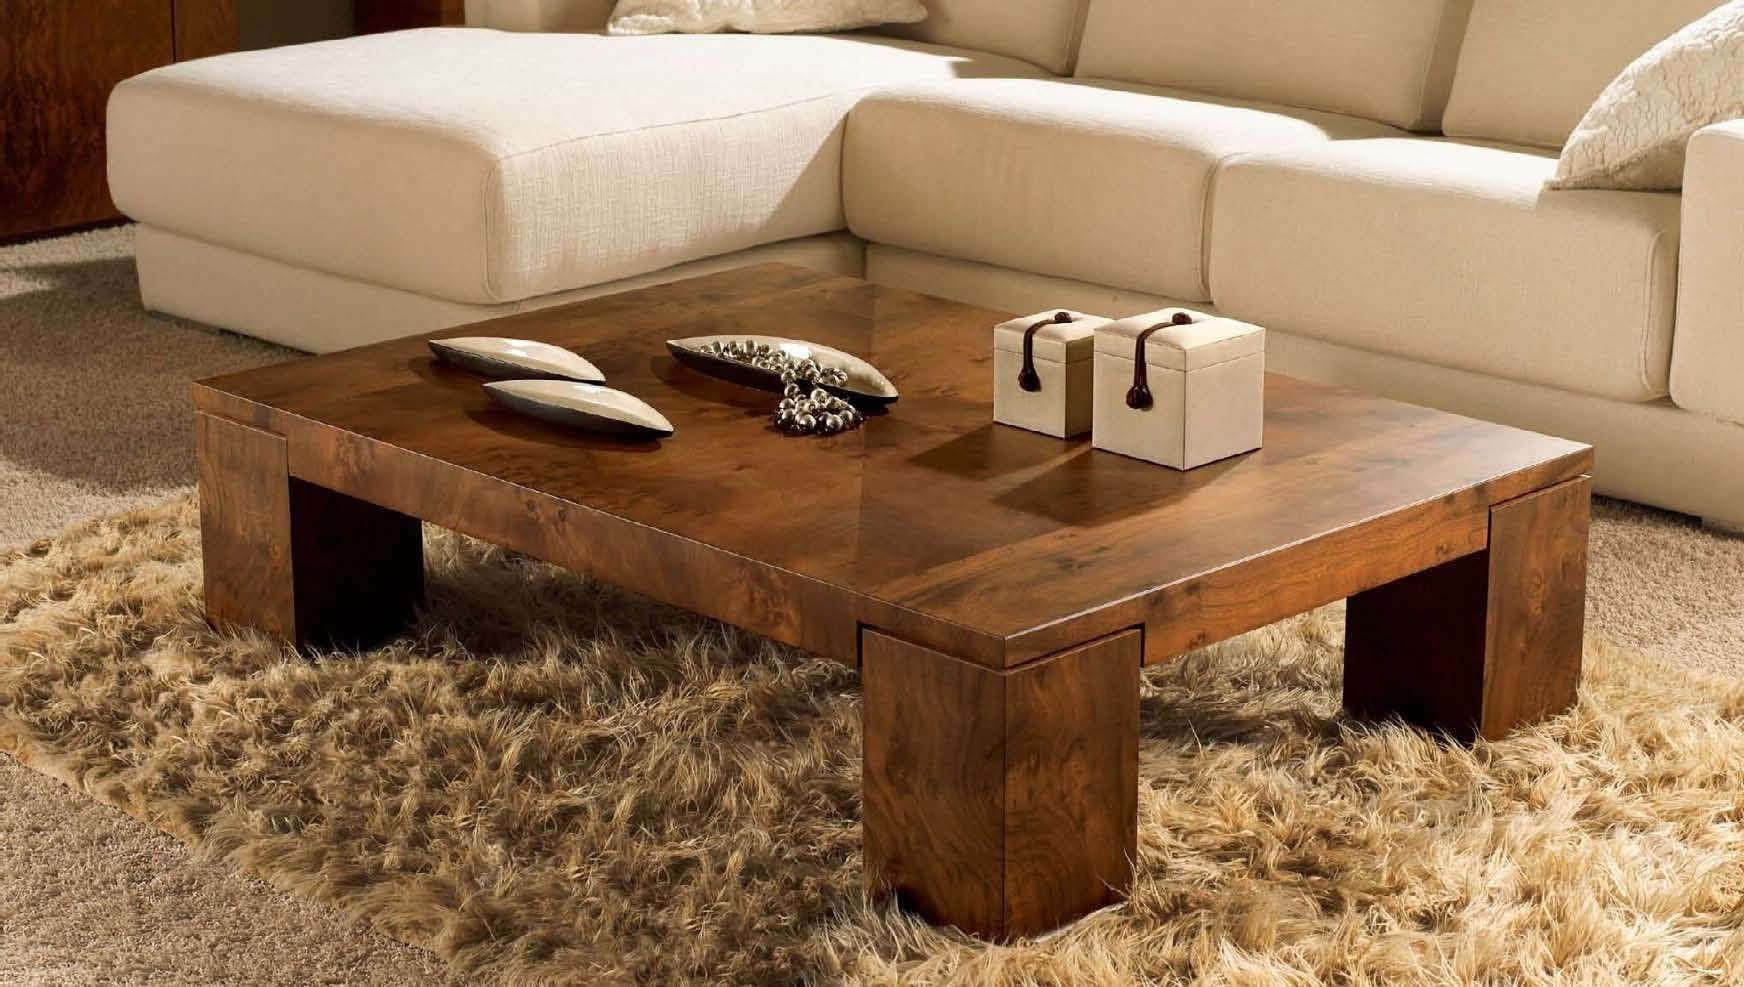 Messe Rustic Wood Coffee Table Designs New Grounds End Tables Intended For Most Recently Released Rustic Wooden Coffee Tables (View 8 of 20)